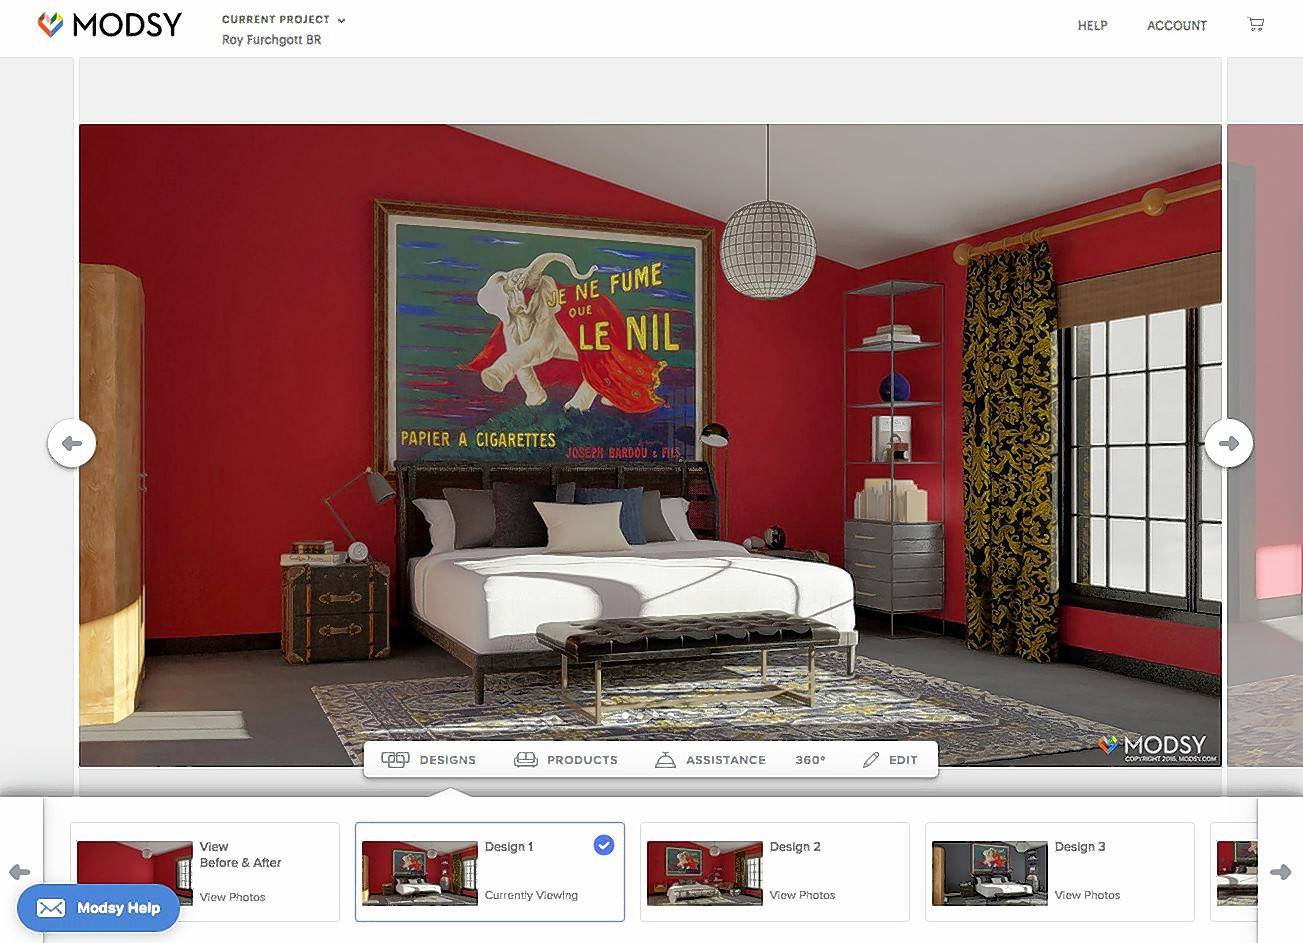 Modsy Is Among The Online Home Design Services That Author Roy Furchgott  Tried.